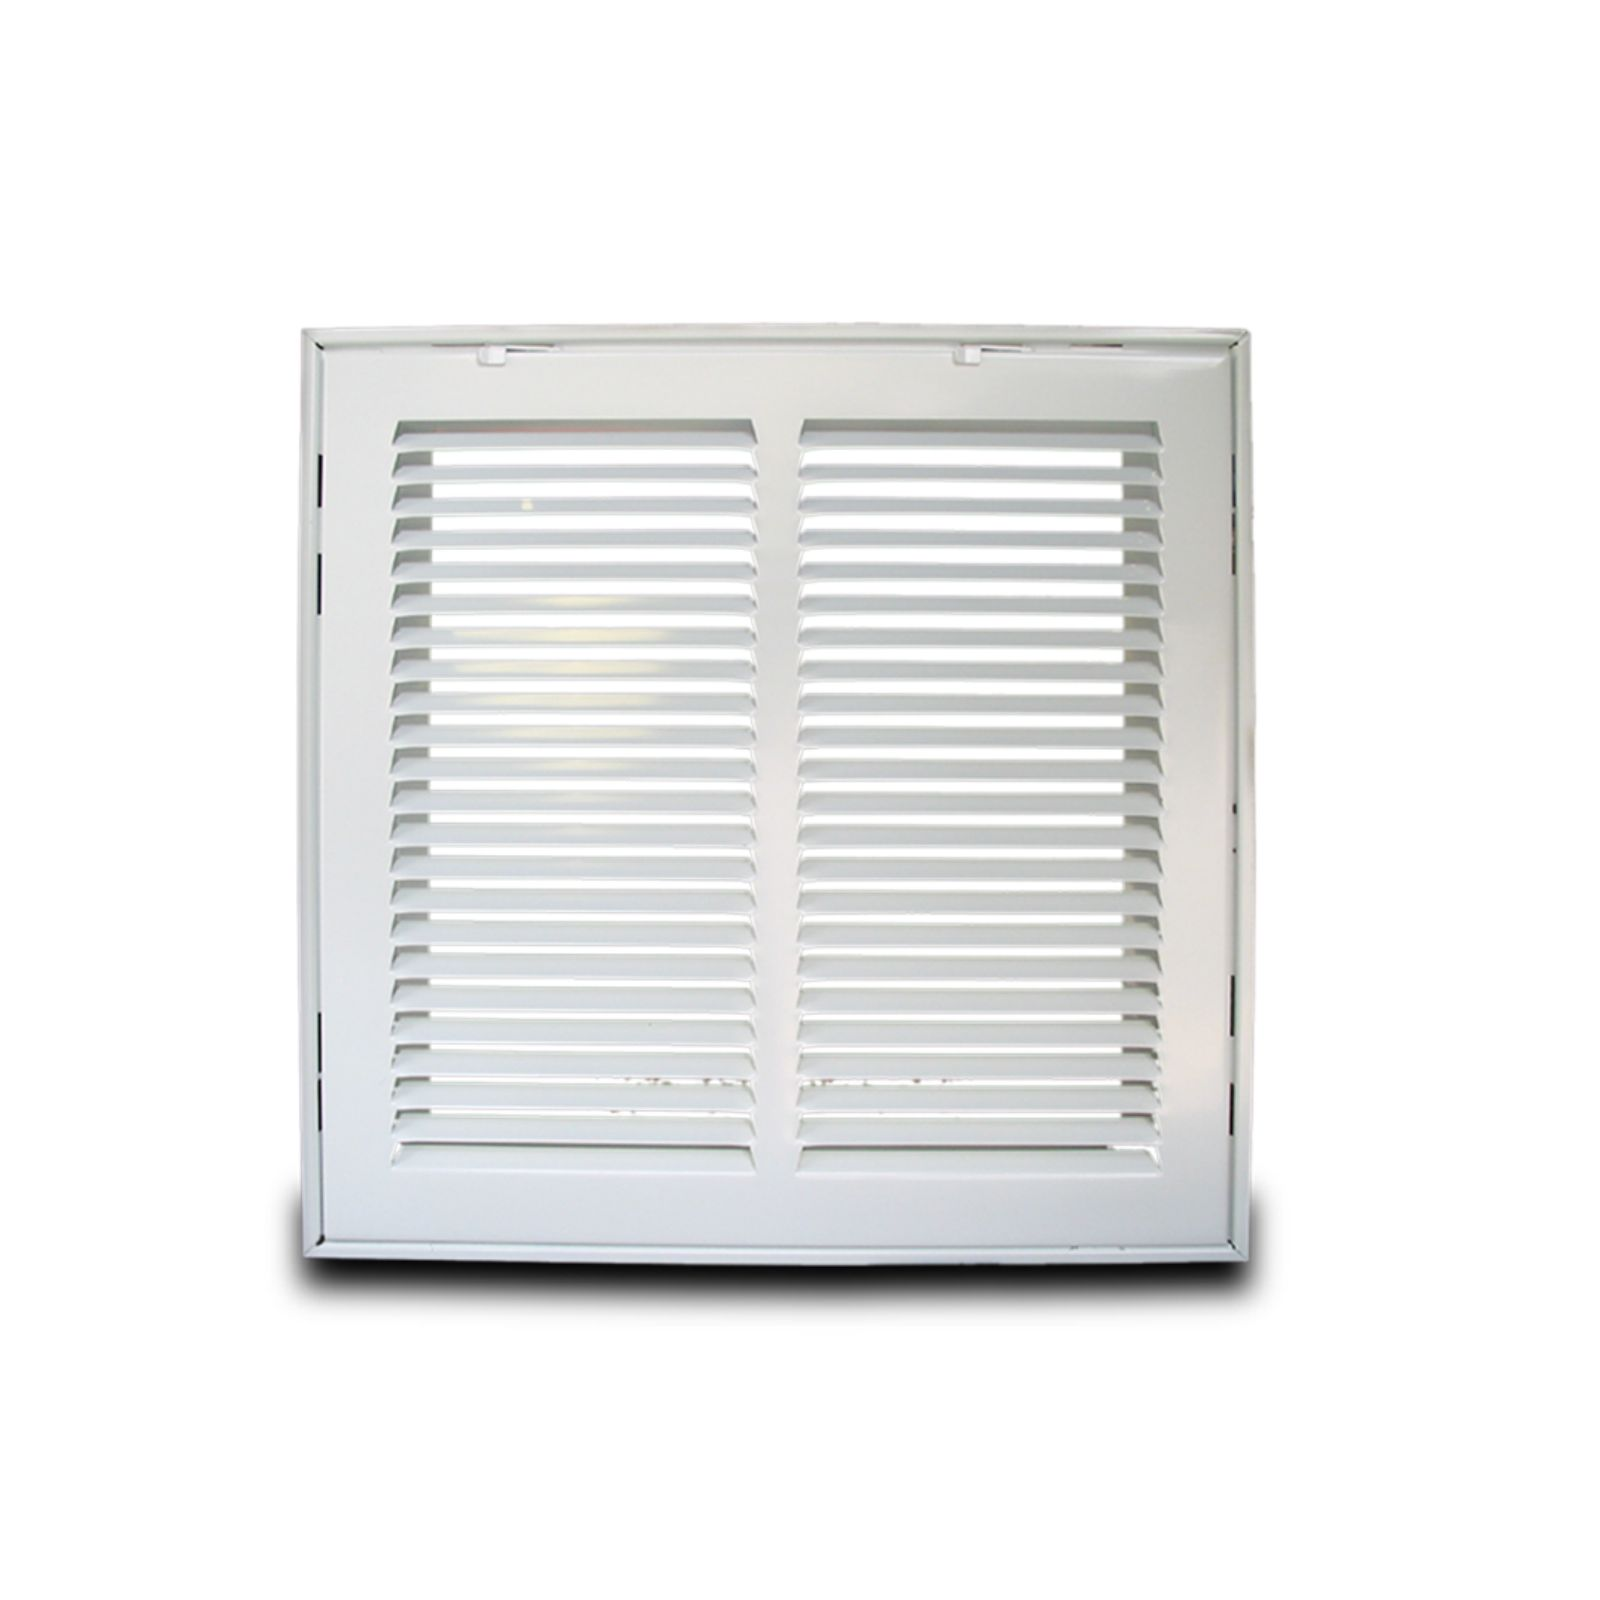 "Metal-Fab MFRFG2025W - Metal Fab Return Filter Grille, White, 20"" X 25"""